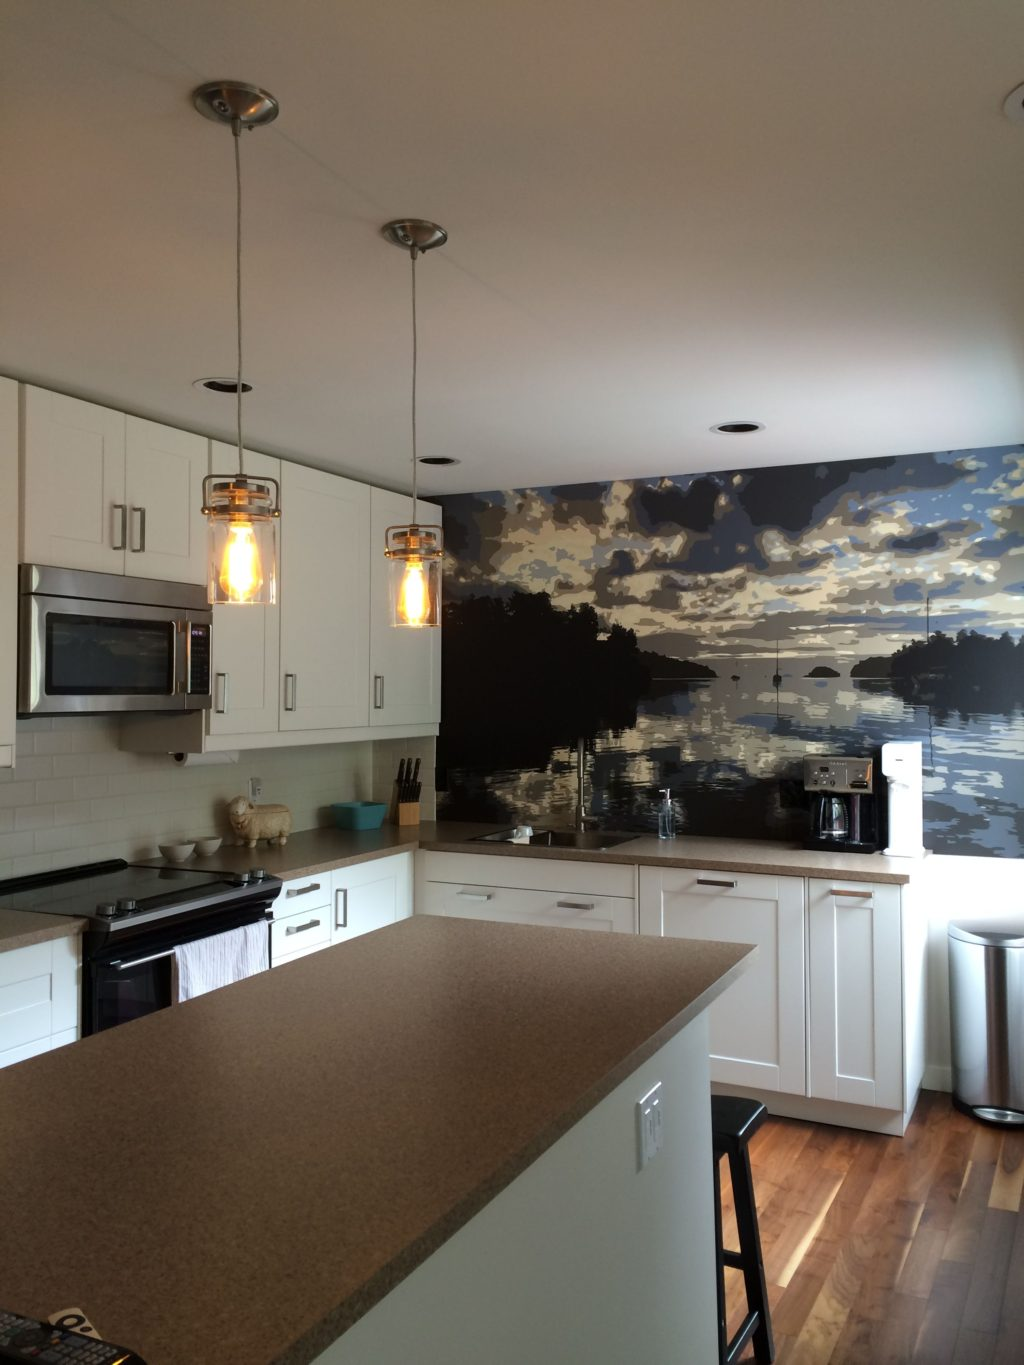 Scenery-wallpapers-1024x1365 80+ Unusual Kitchen Design Ideas for Small Spaces in 2021